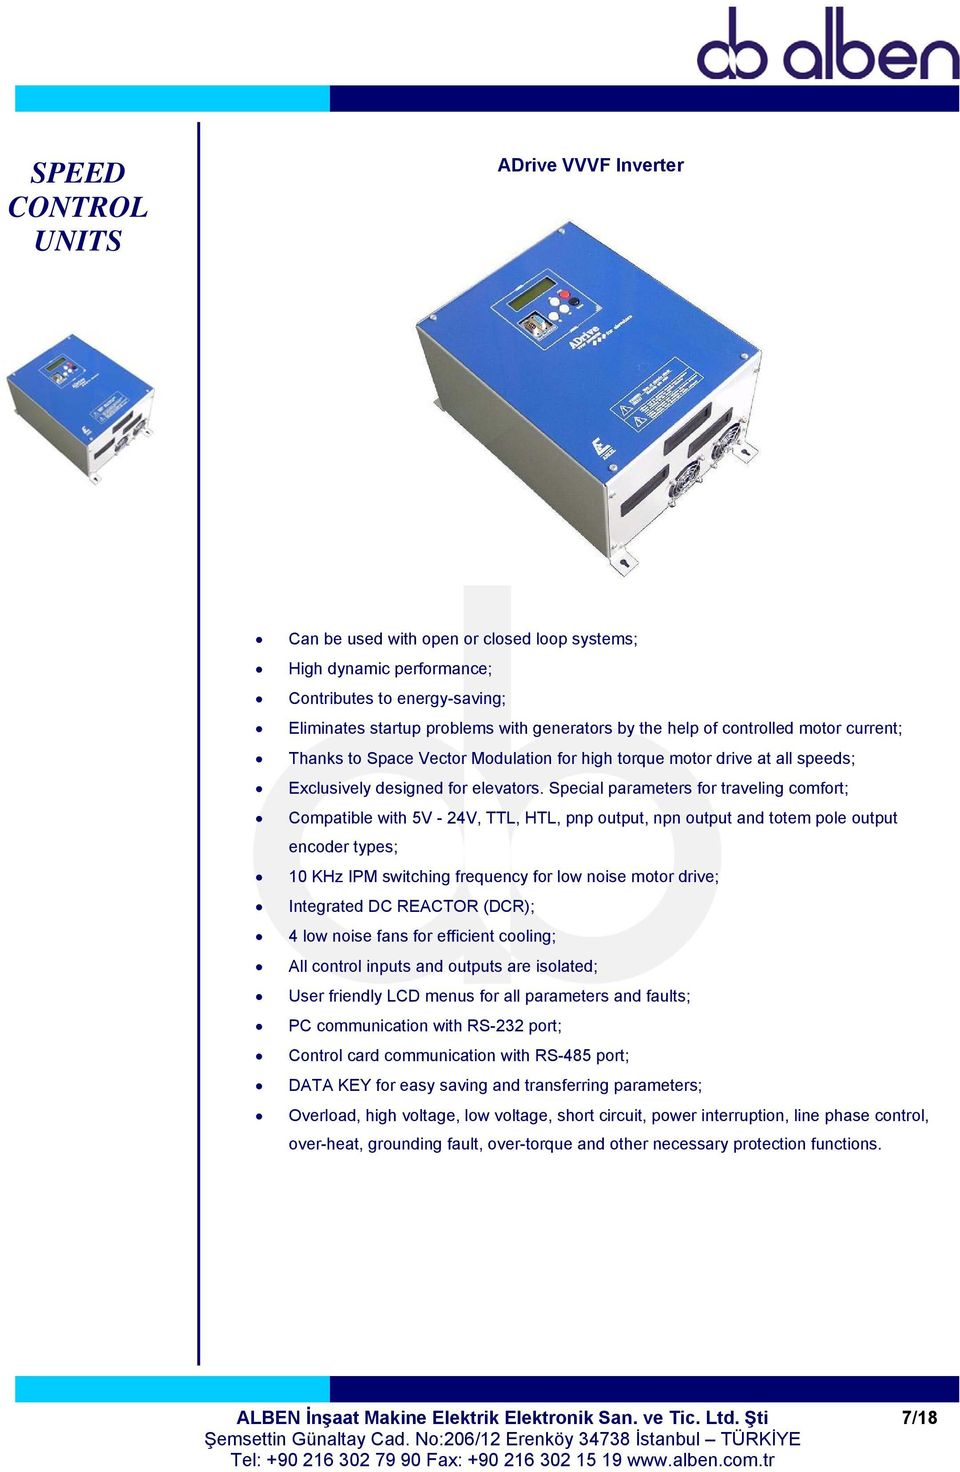 Special parameters for traveling comfort; Compatible with 5V - 24V, TTL, HTL, pnp output, npn output and totem pole output encoder types; 10 KHz IPM switching frequency for low noise motor drive;